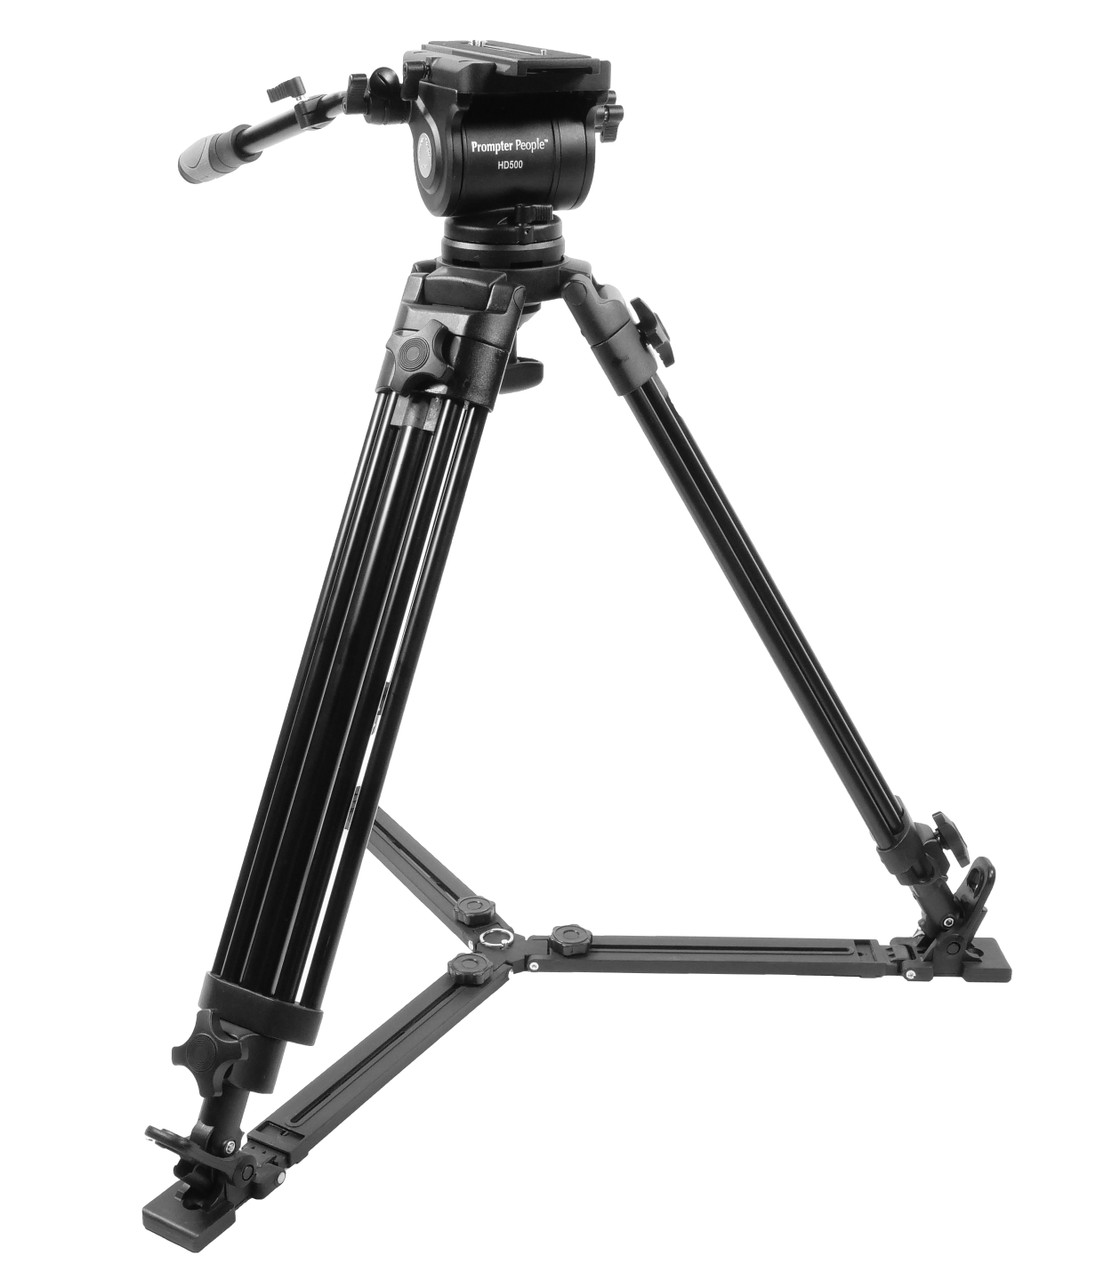 PrompterPeople Heavy Duty Tripod HD-500 50 LB Tripod Lowered